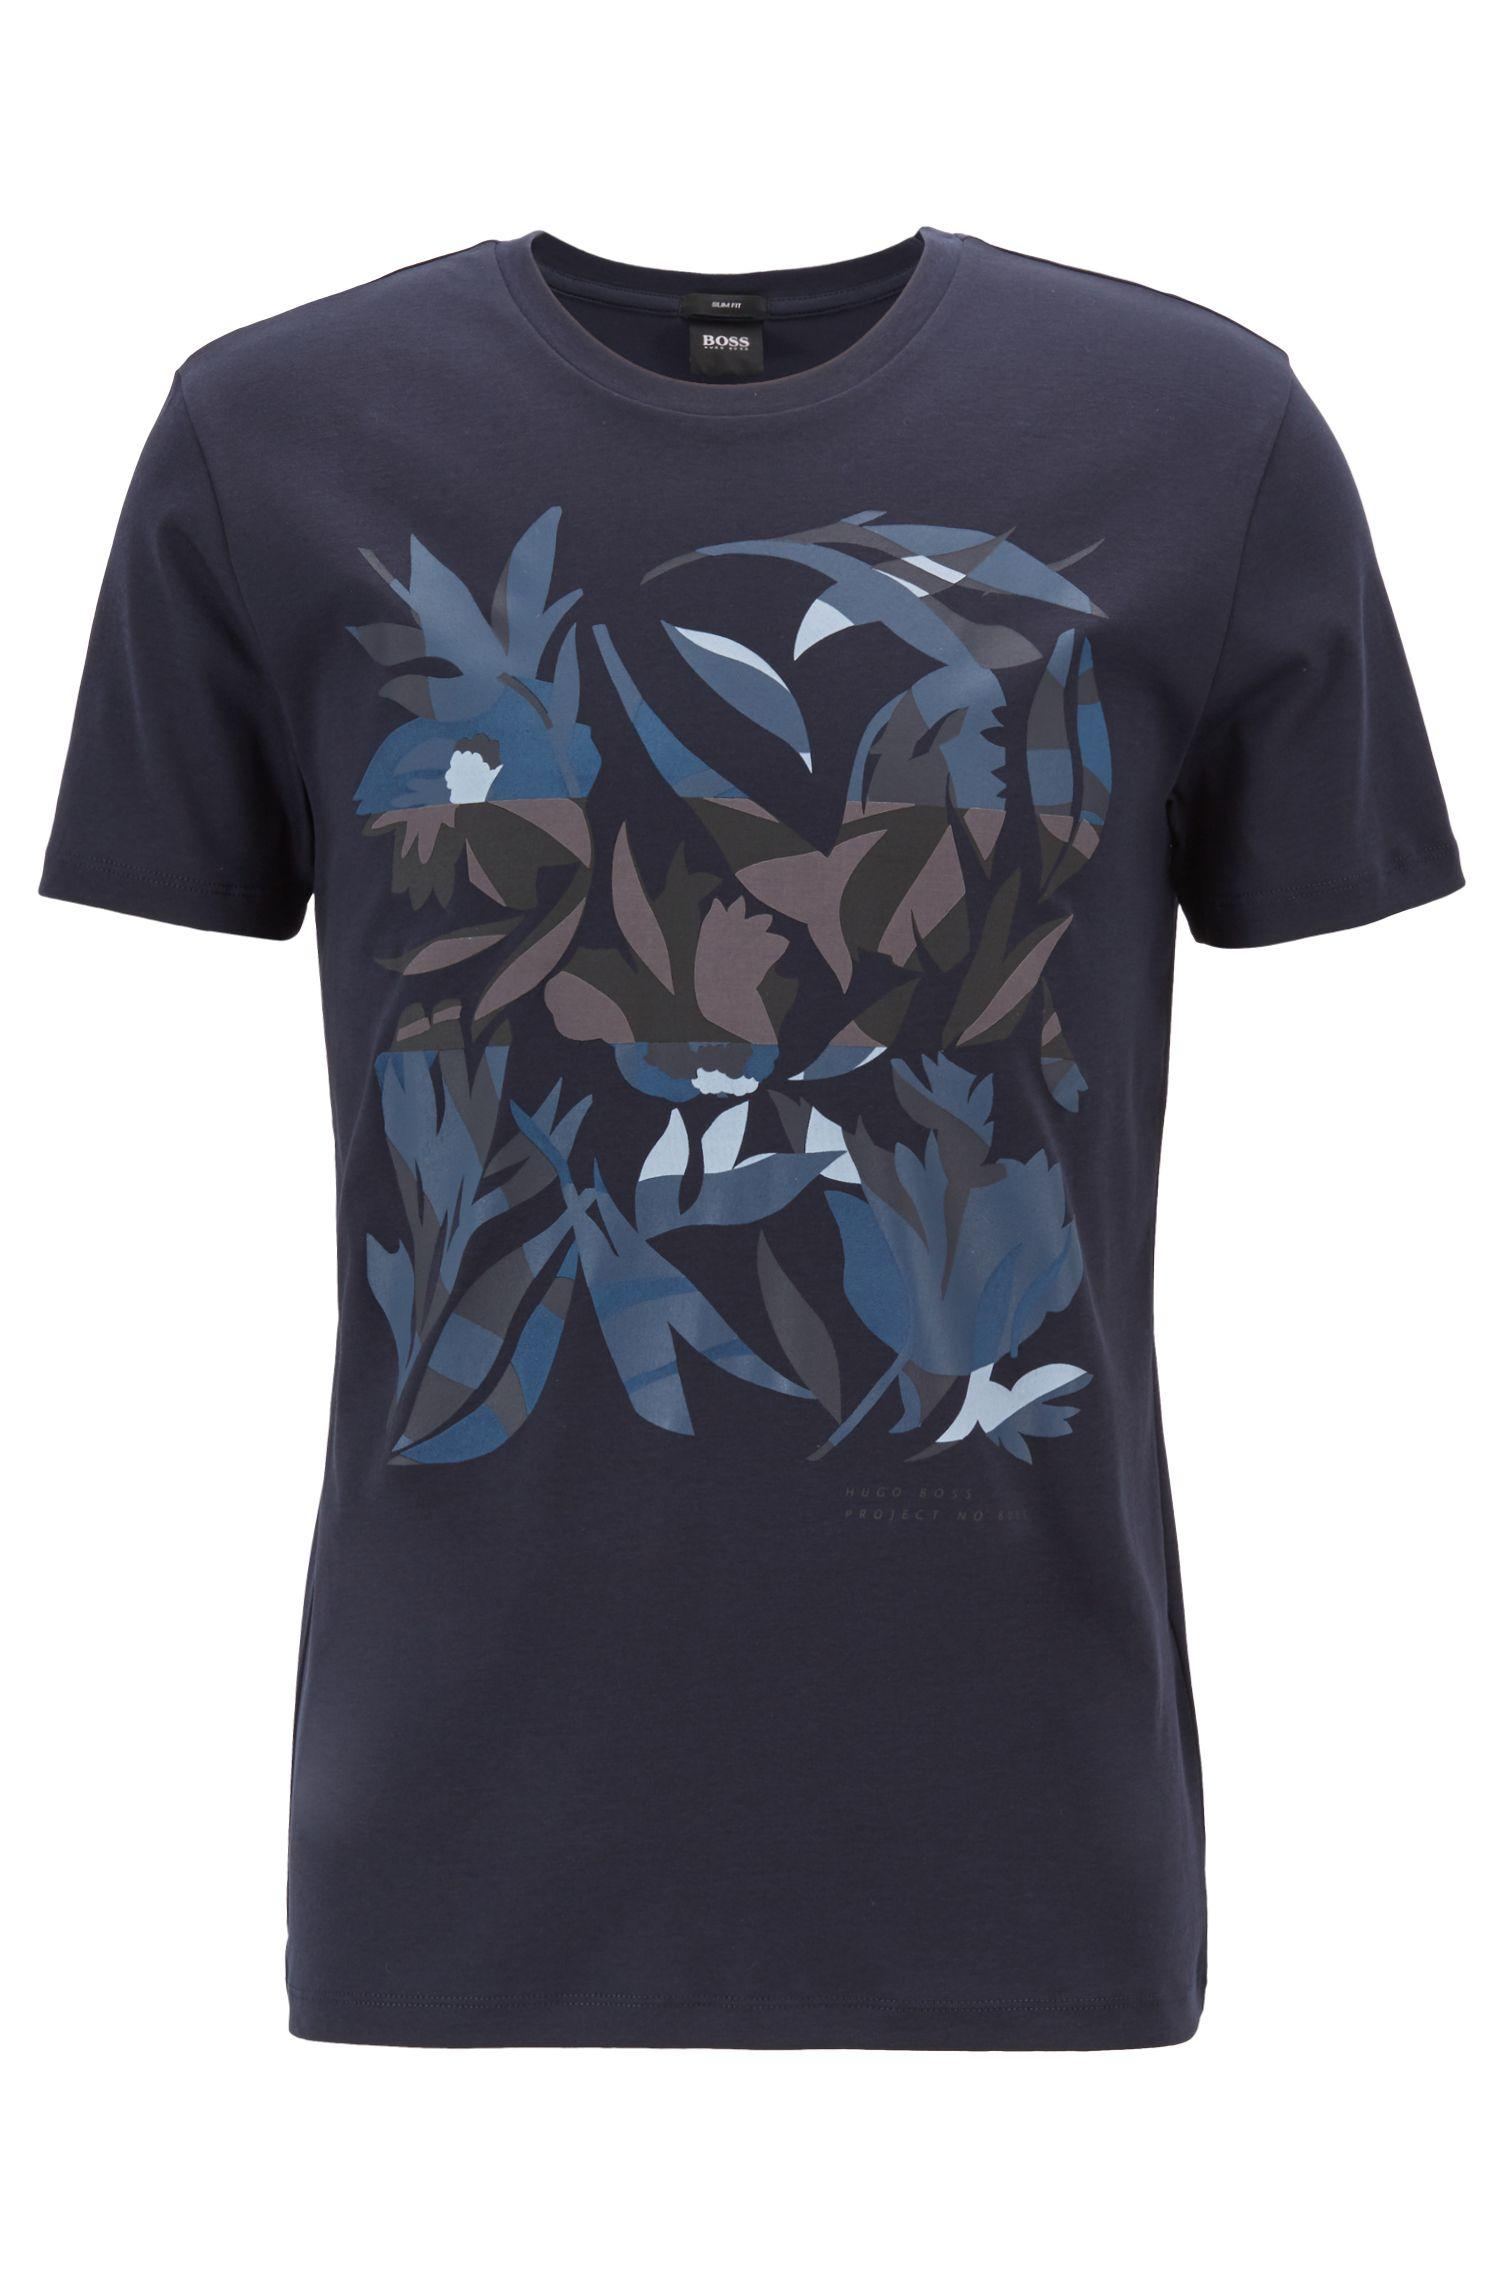 4e511d272 ... Blue Slim-fit T-shirt In Cotton With 3d-effect Print. Visit HUGO BOSS.  Tap to visit site